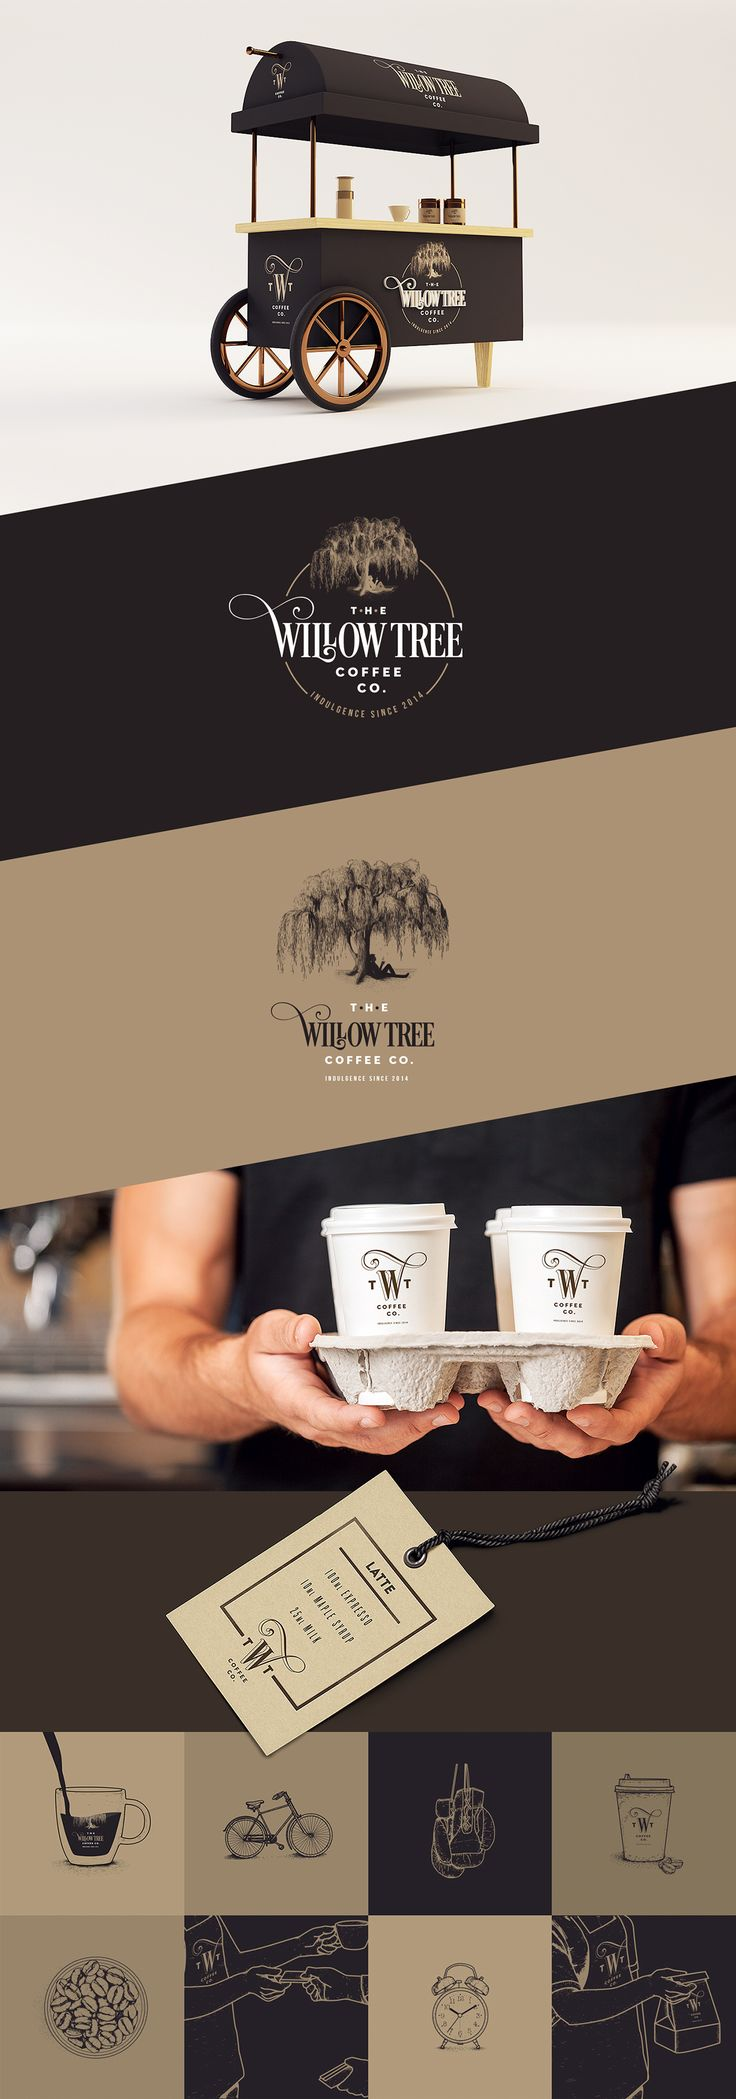 The Willow Tree Coffee CO. on Branding Served